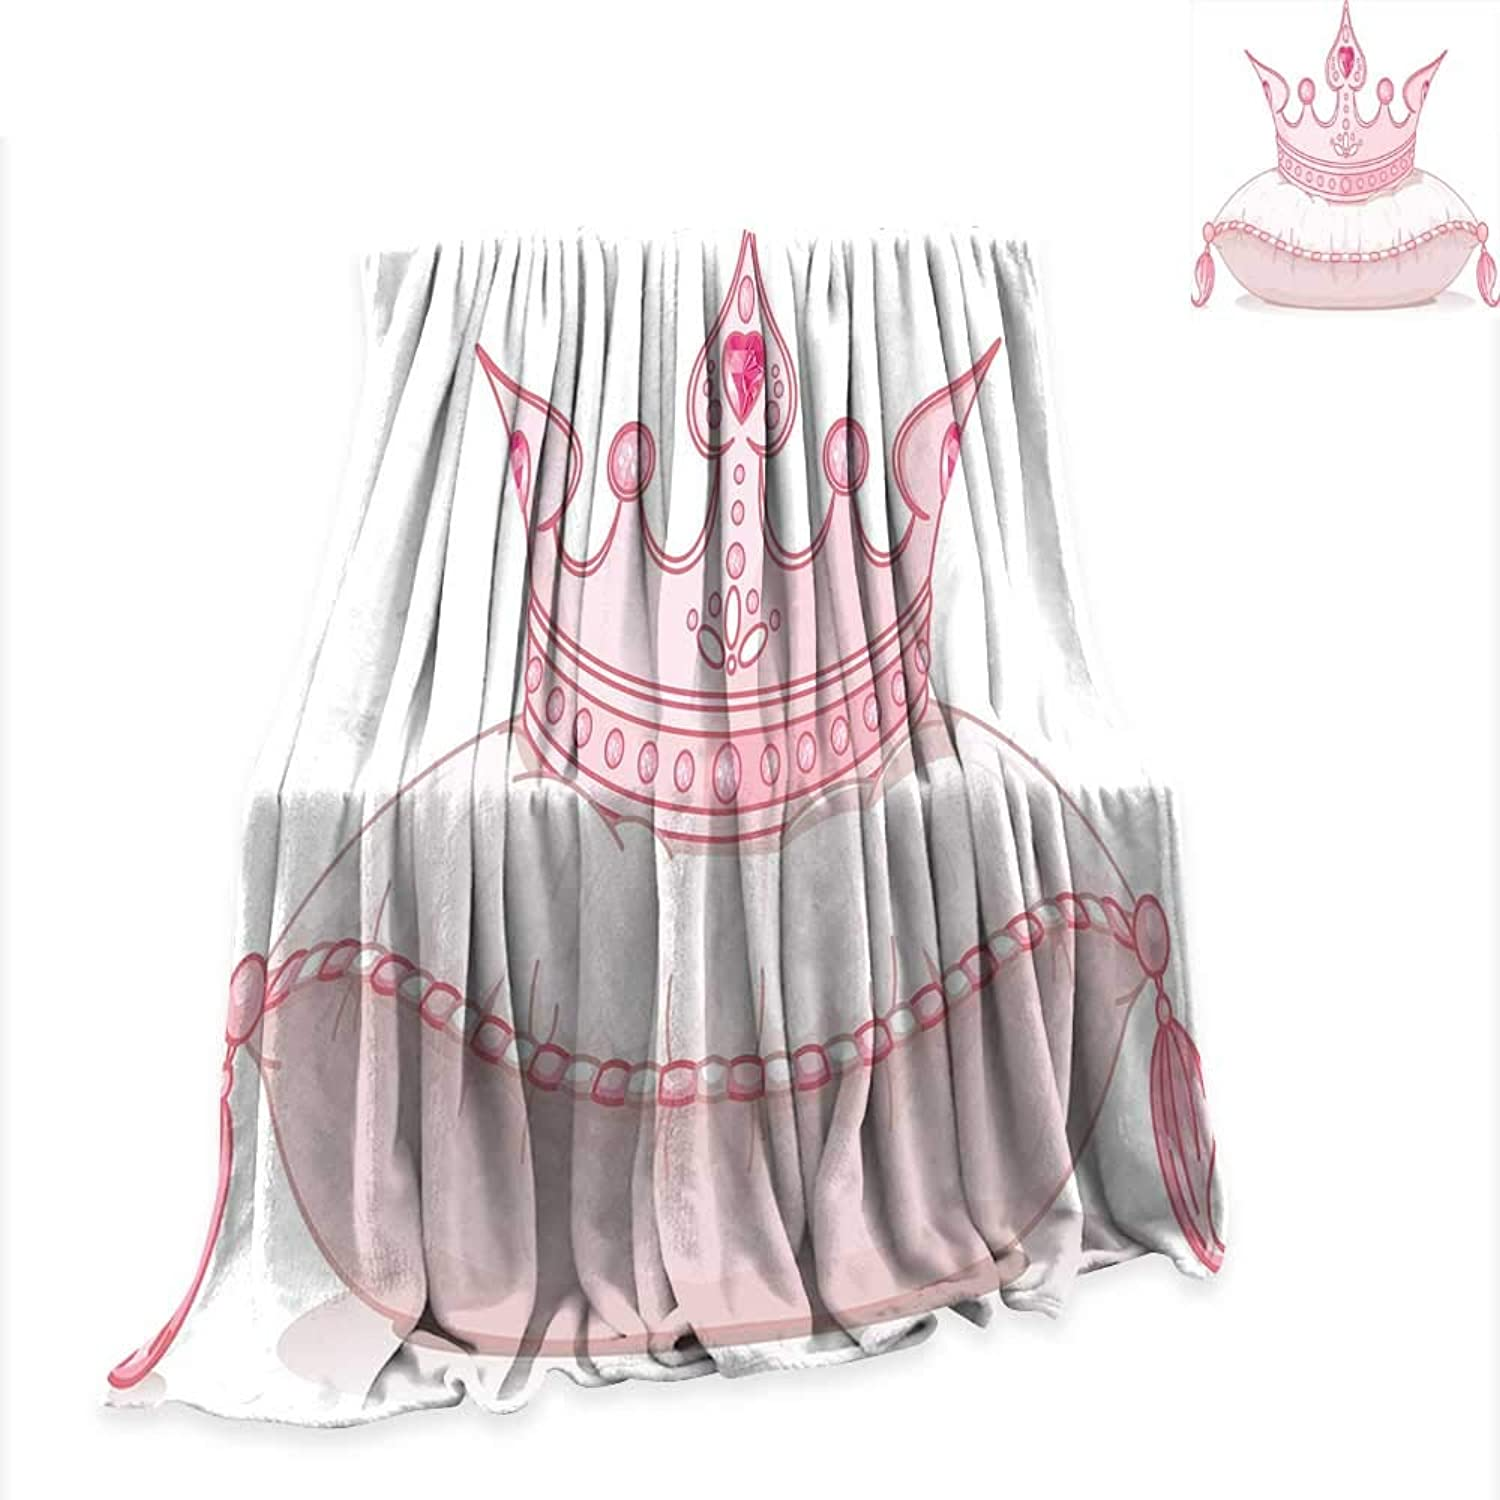 RenteriaDecor Beach Blanket Queen,Cartoon Style Cute Pink Princess Crown on Pillow Fairy Tail Fantasy Girlish Fashion,Pale Pink Comfortable and Warm W54 x L72 inch